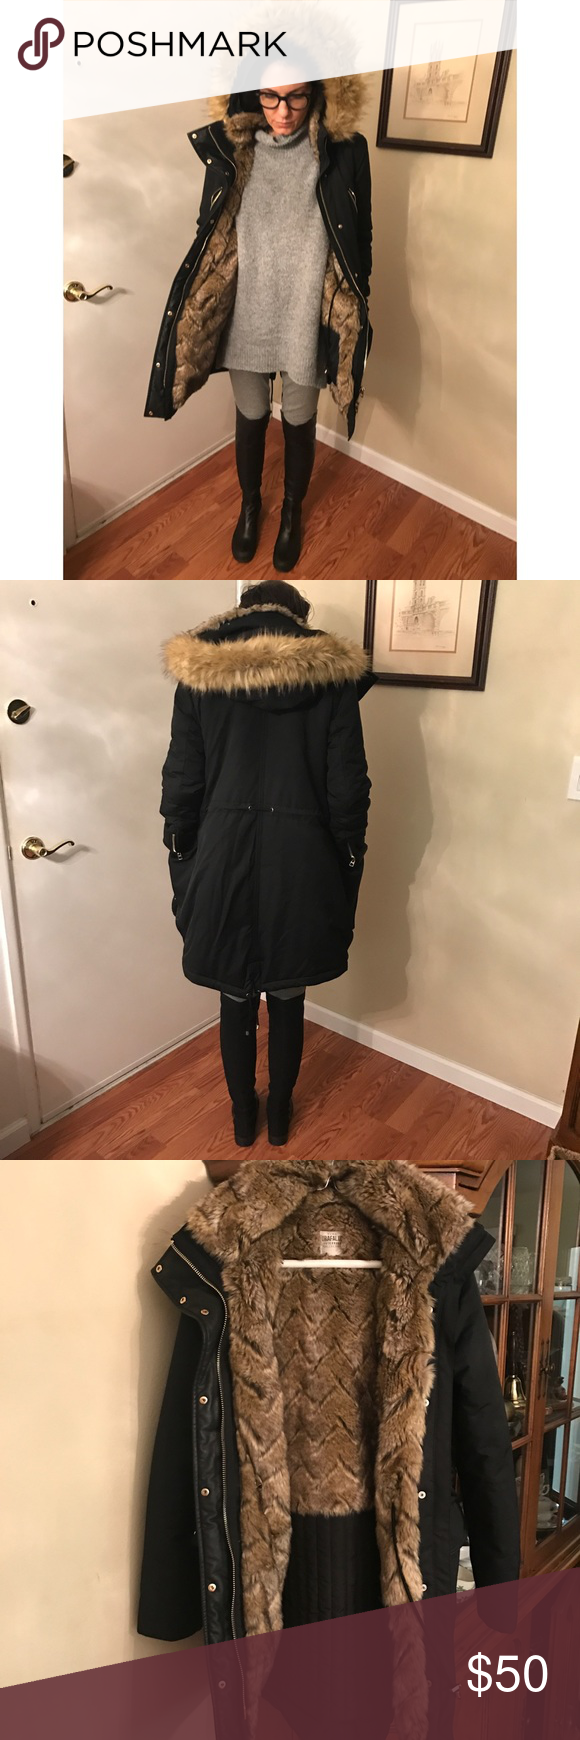 Zara Parka w/Faux Fur Lining and Hood XS Parka from Zara Worn 2times great condition. Bought in a lunch in london it's also in my photo of the Arsenal Beanie. This is not for Super Super cold temp but I was just in 30 in snow and it looked cute and did the job over my layers. Inside pockets and cozy faux fur lining. Zara Jackets & Coats Puffers